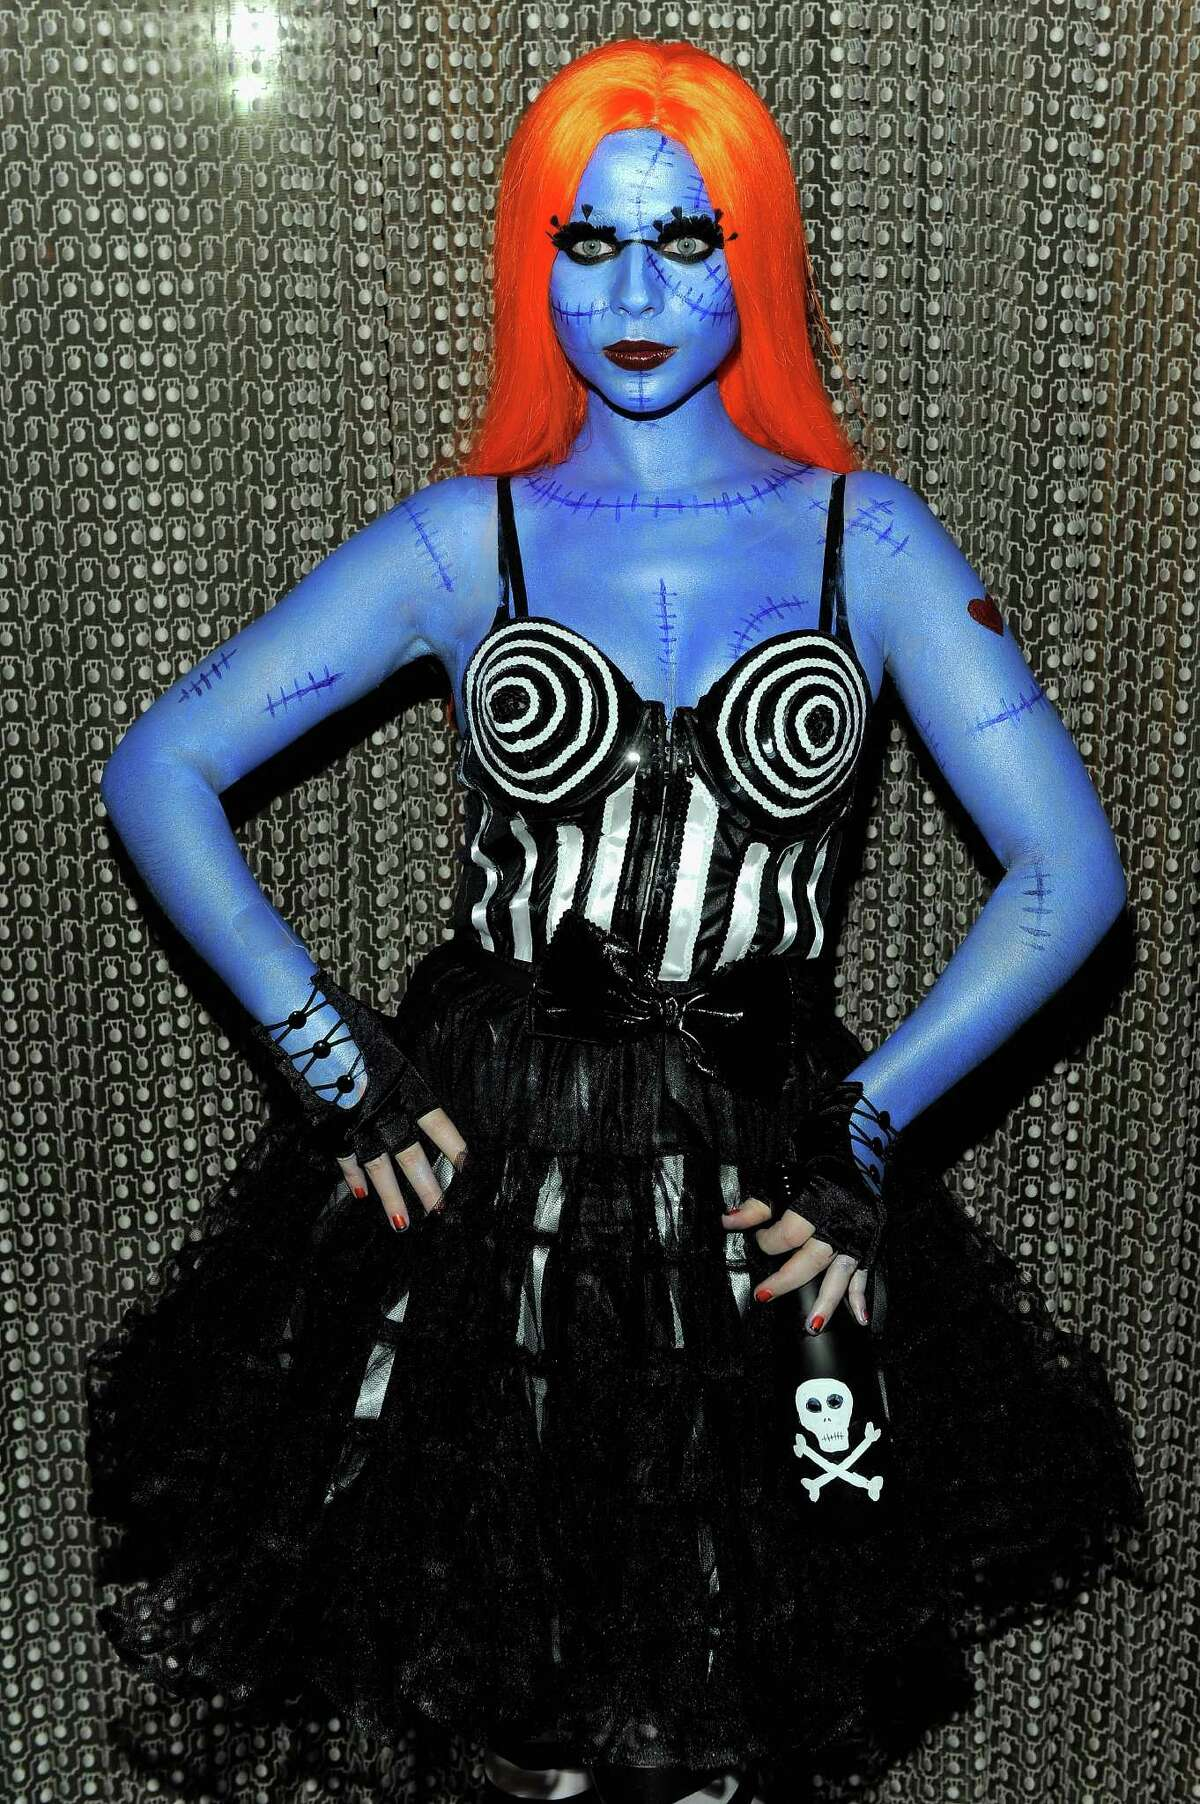 Michelle Tractenberg attends Heidi Klum's 12th annual Halloween party at the PH-D Rooftop Lounge at Dream Downtown on October 31, 2011 in New York City.